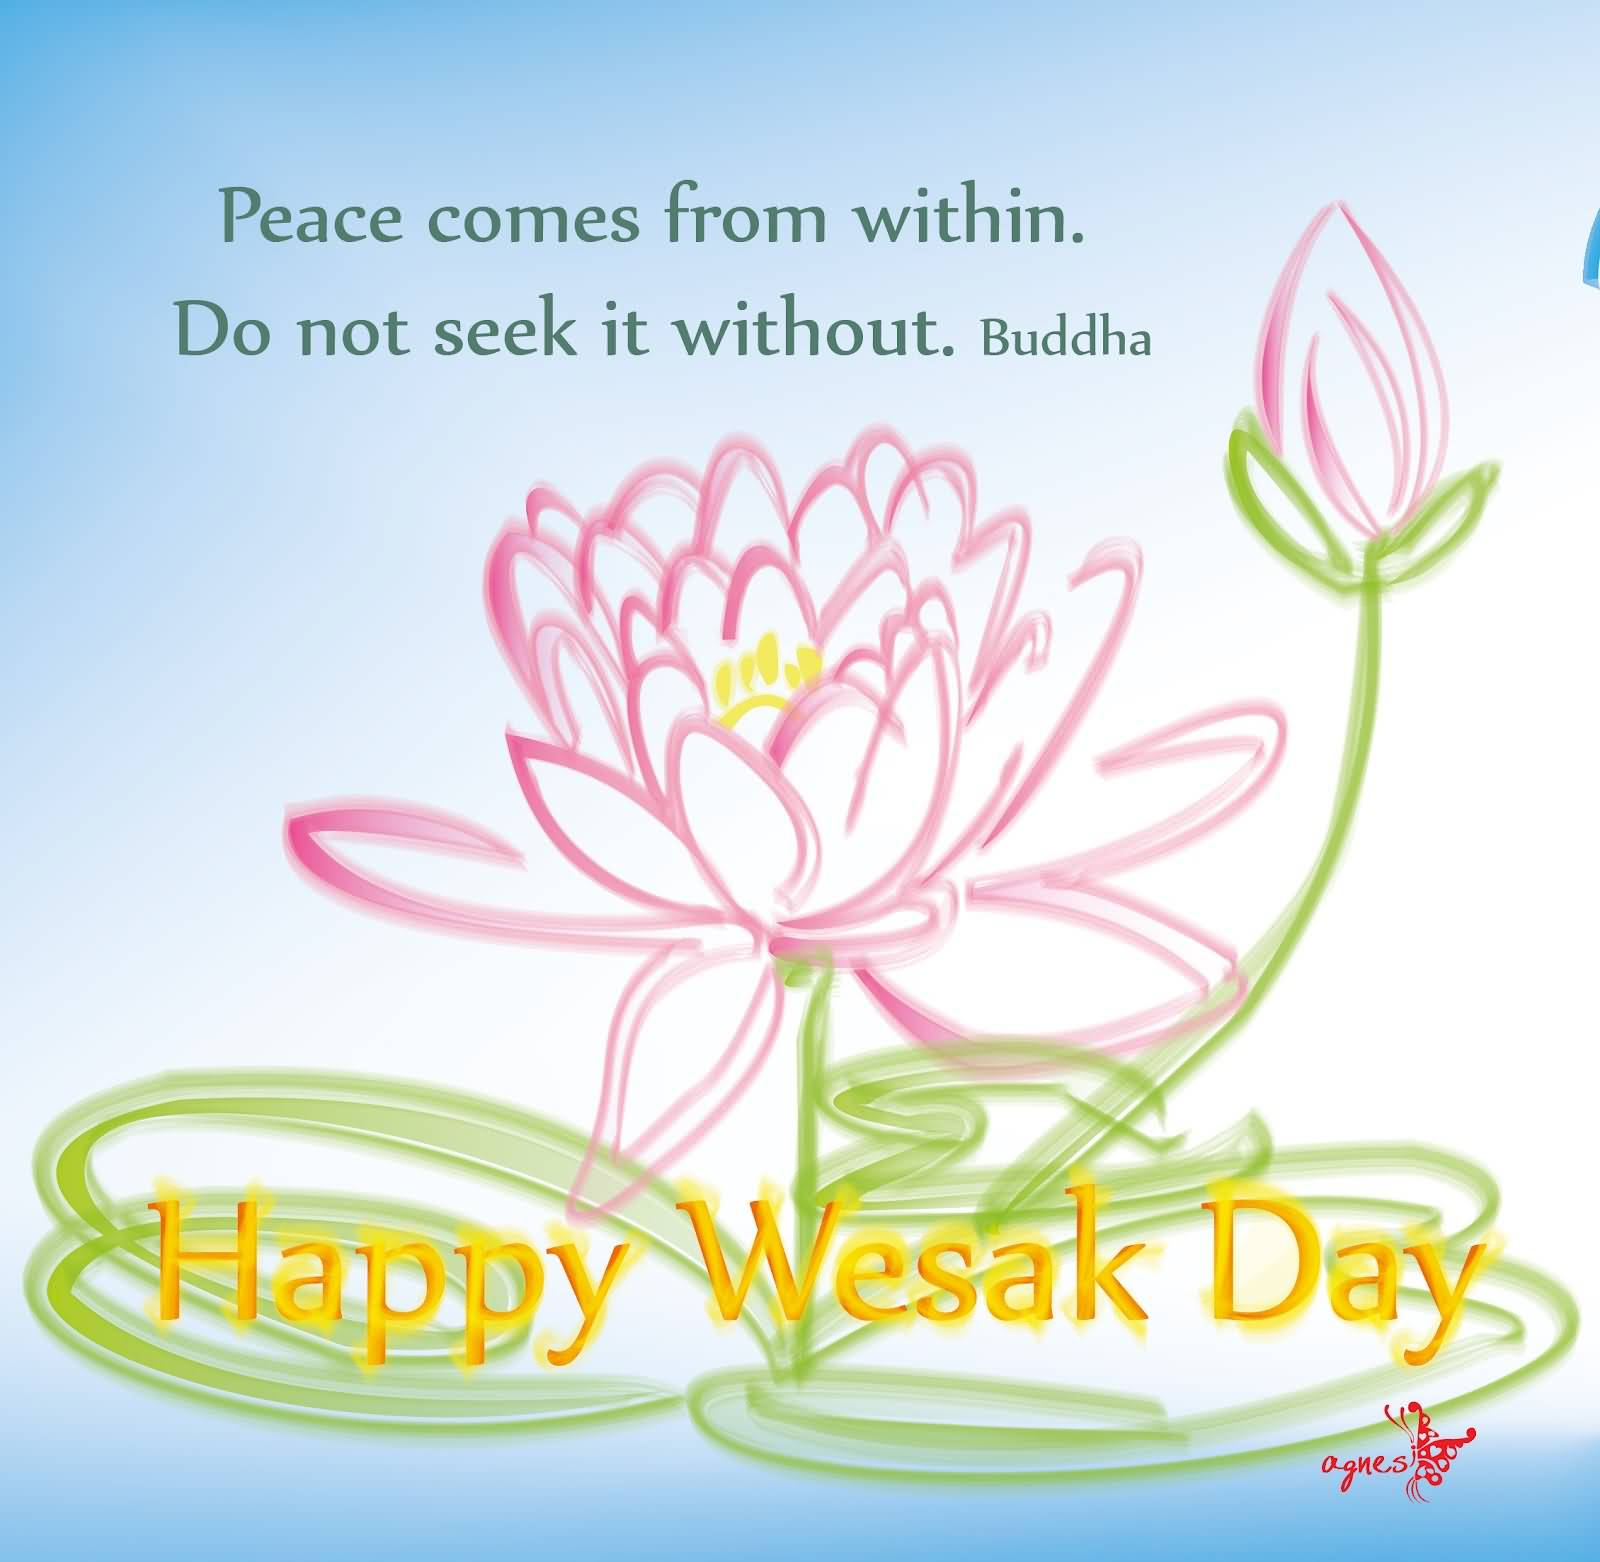 6-Happy Vesak Day Wishes